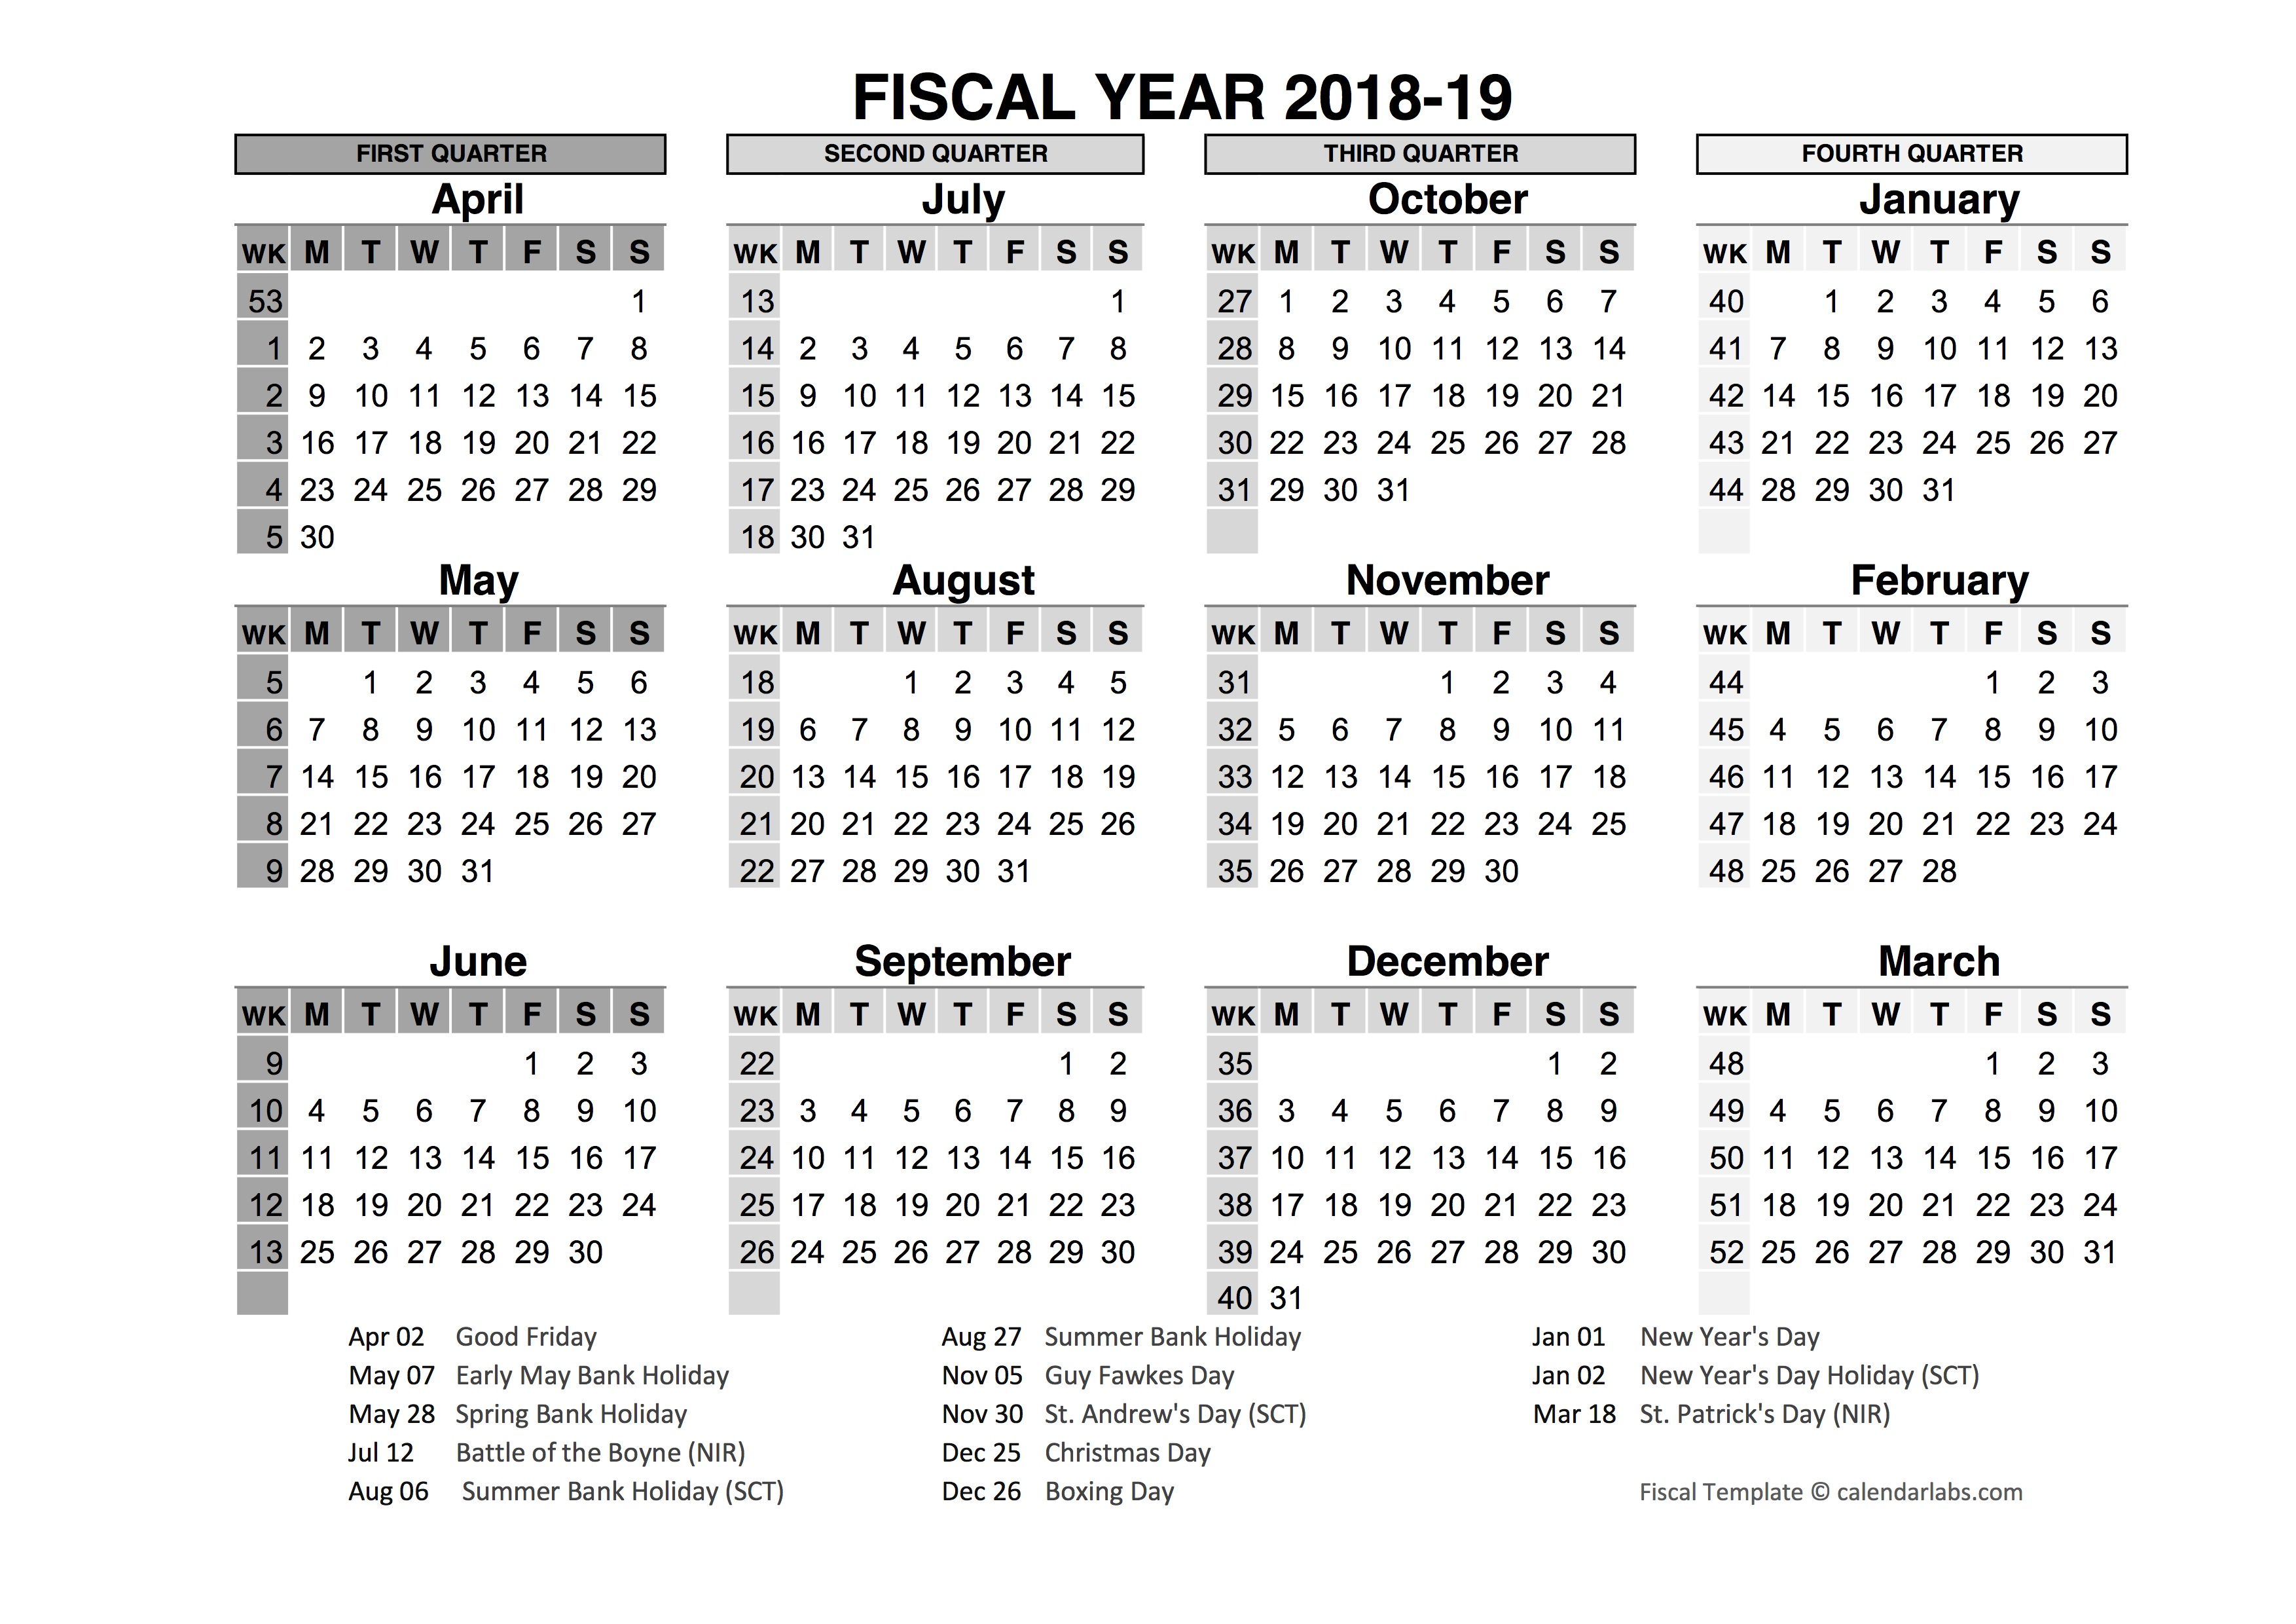 Costco Fiscal Year 2019 Calendar With 2018 In Word PDF Excel Format Office